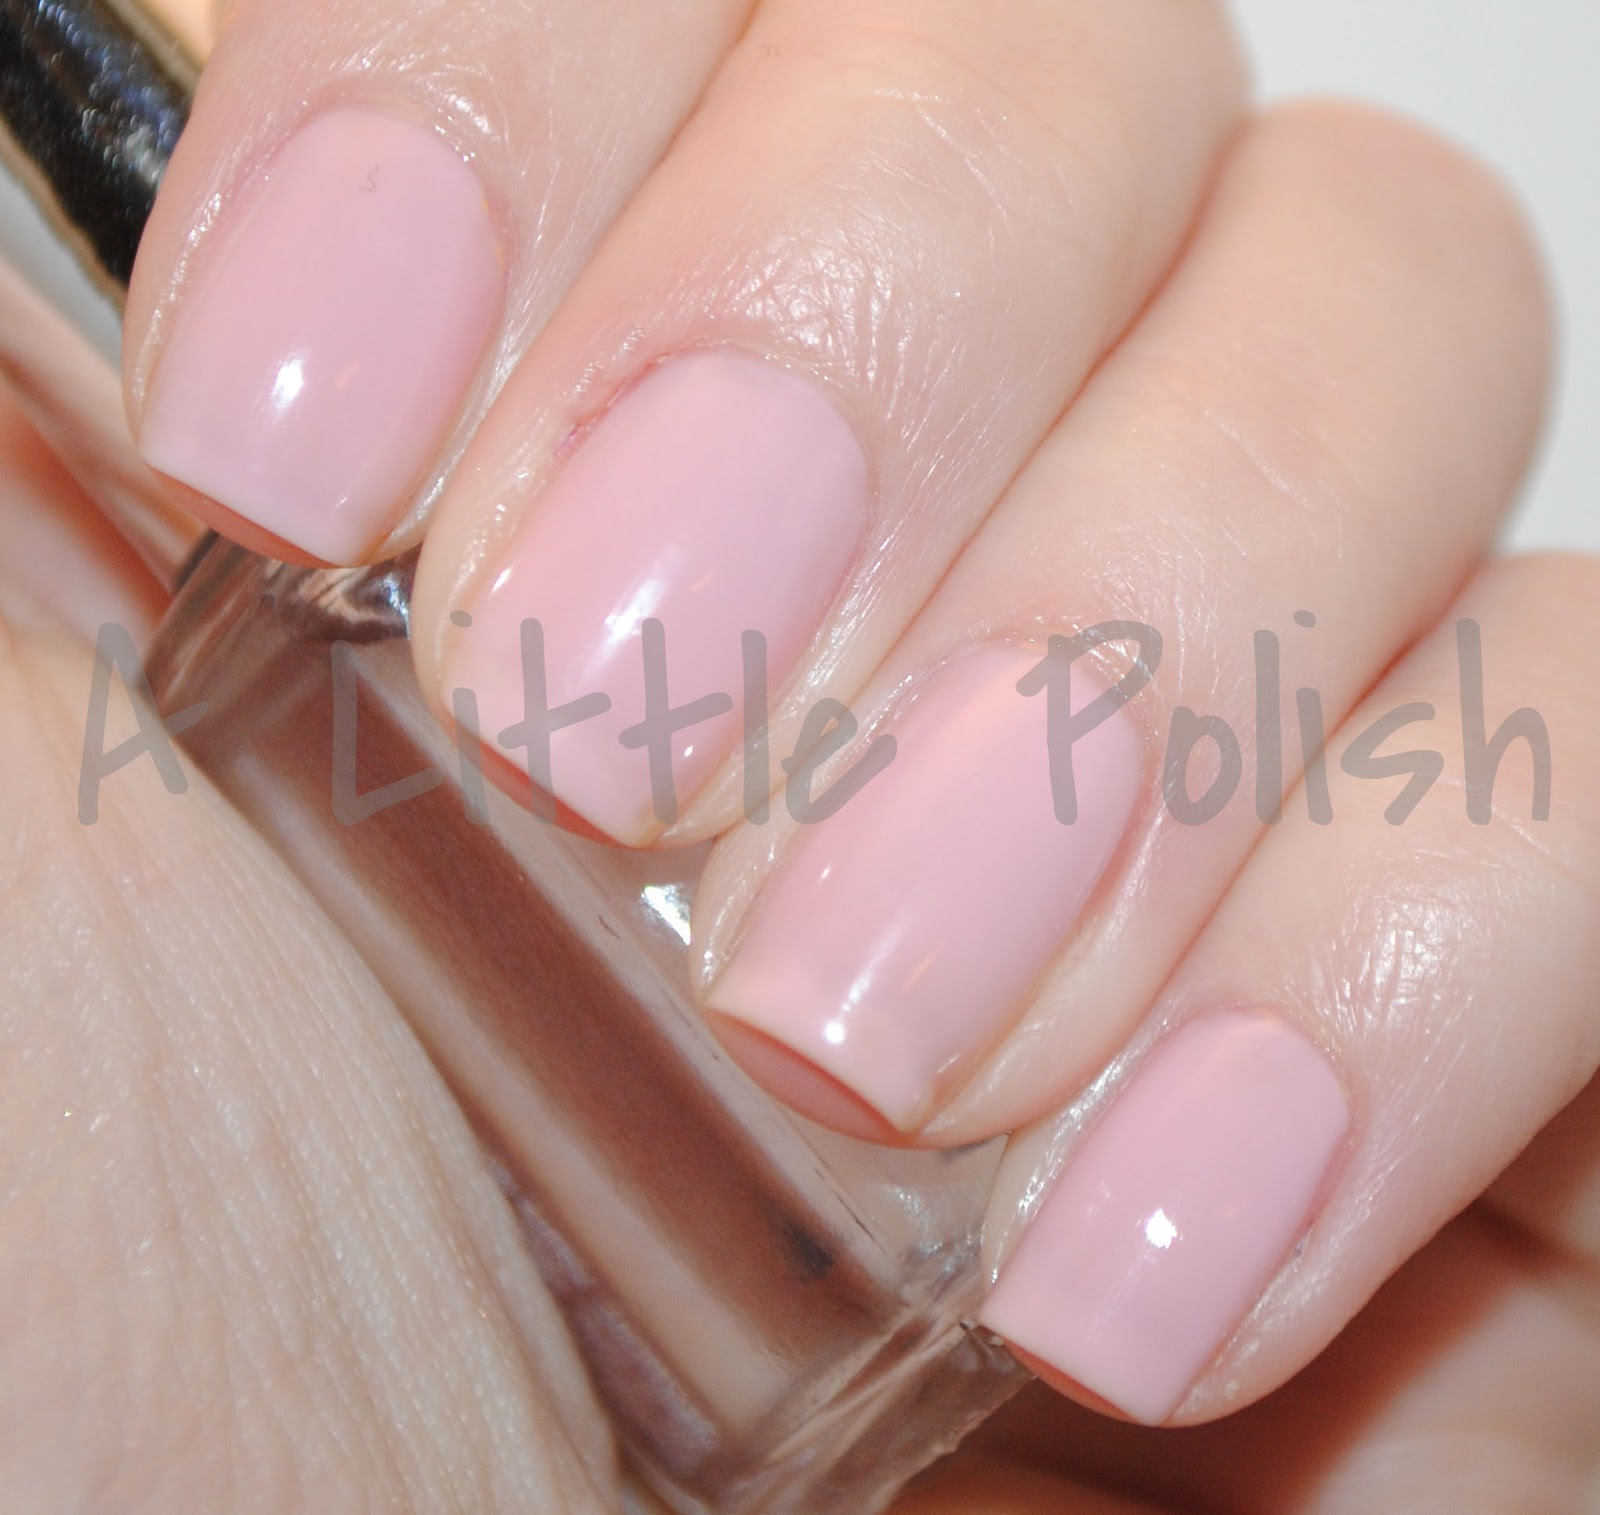 Which Nail Polish Is Better Opi Or Essie- HireAbility